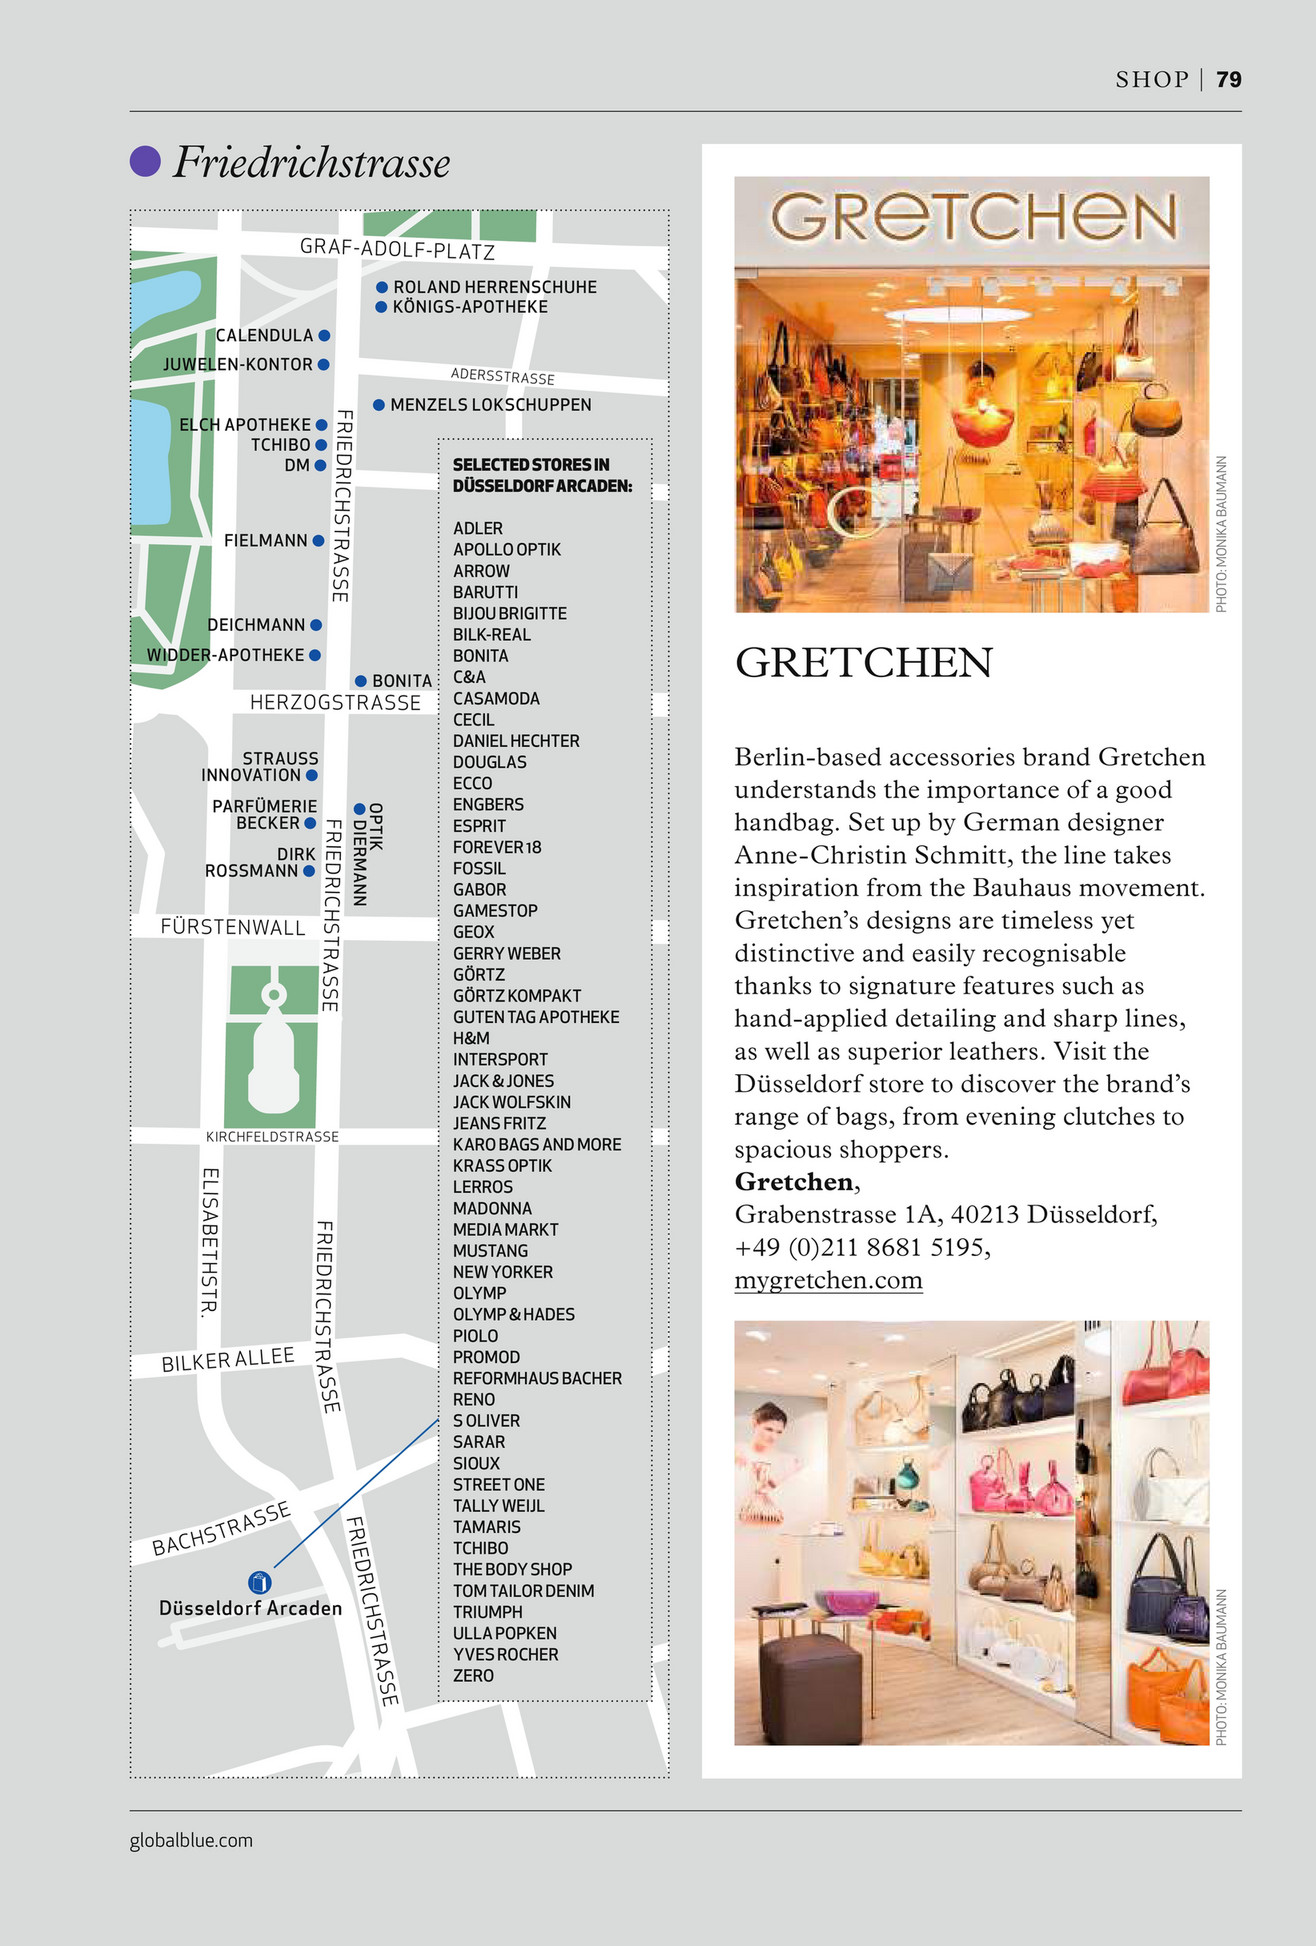 2du Shop Dusseldorf Page 76 77 Created with